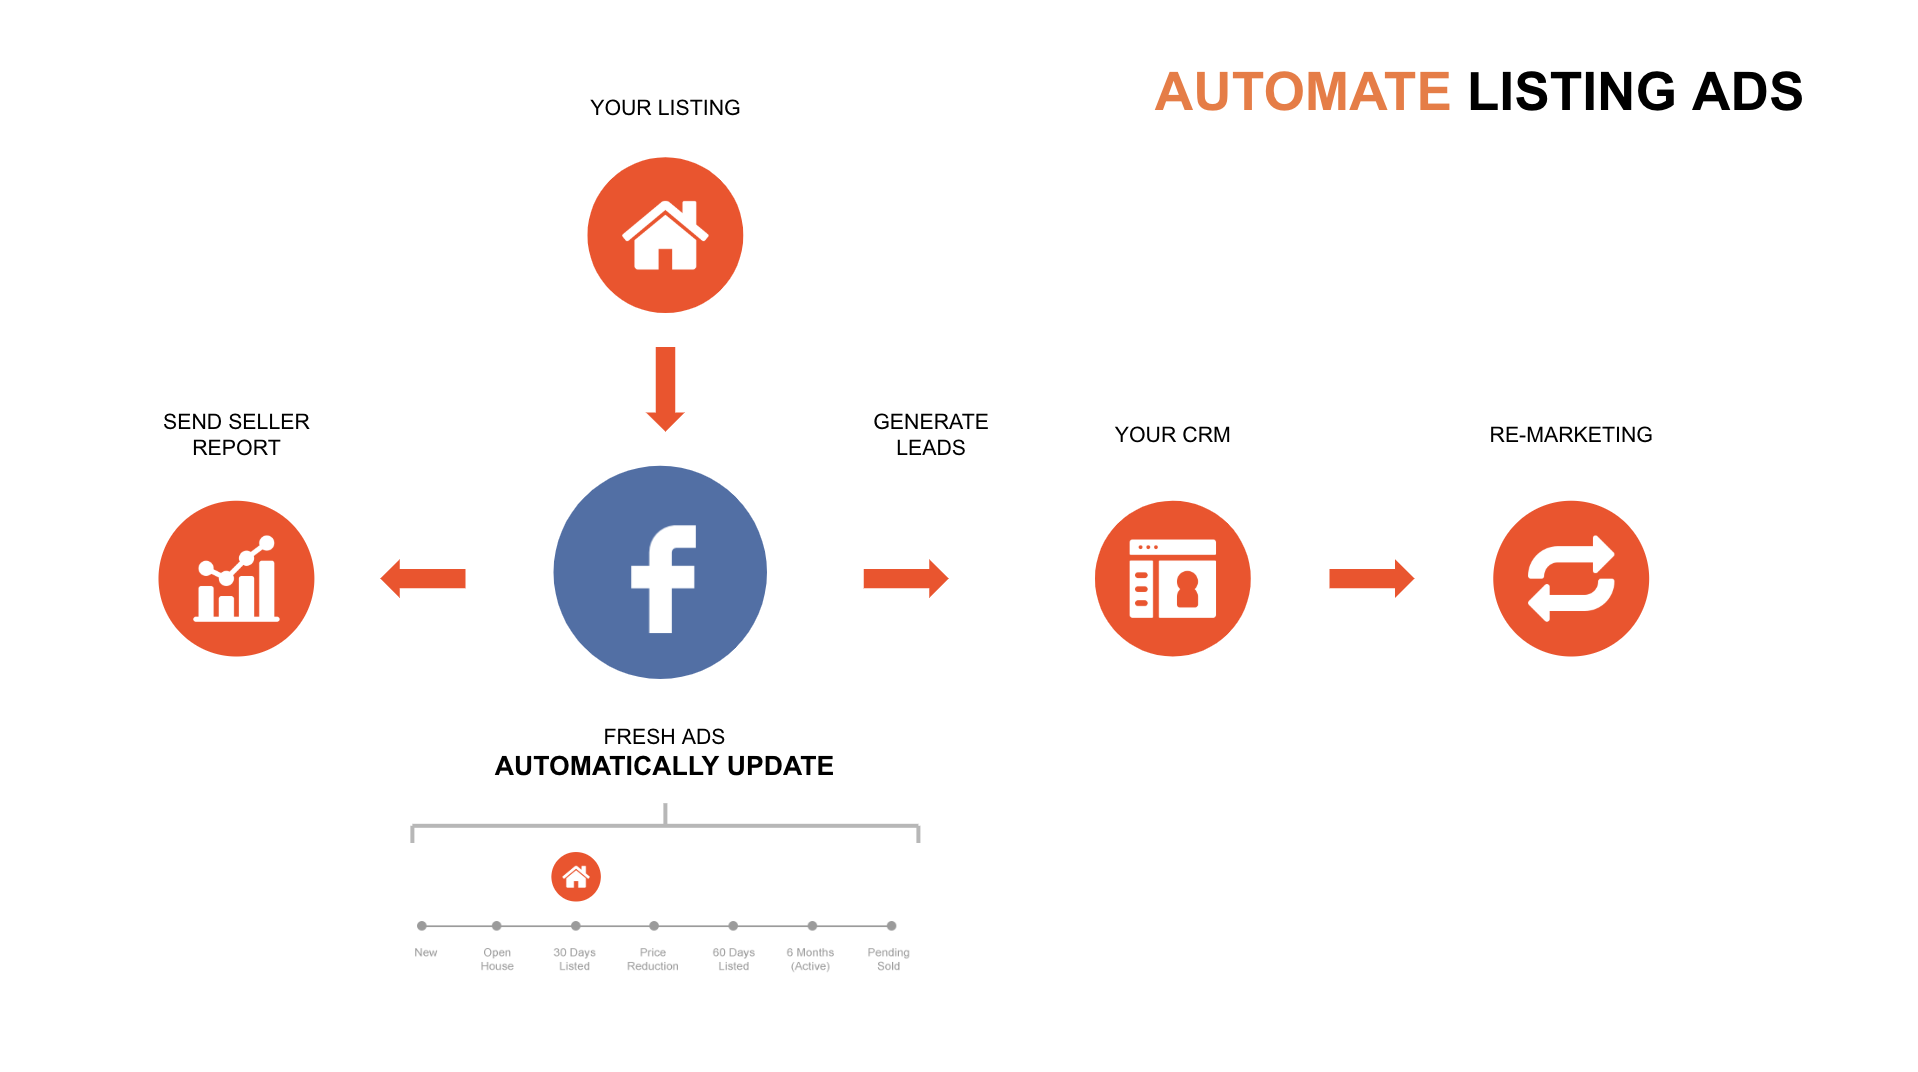 automate listing ads for real estate in austin